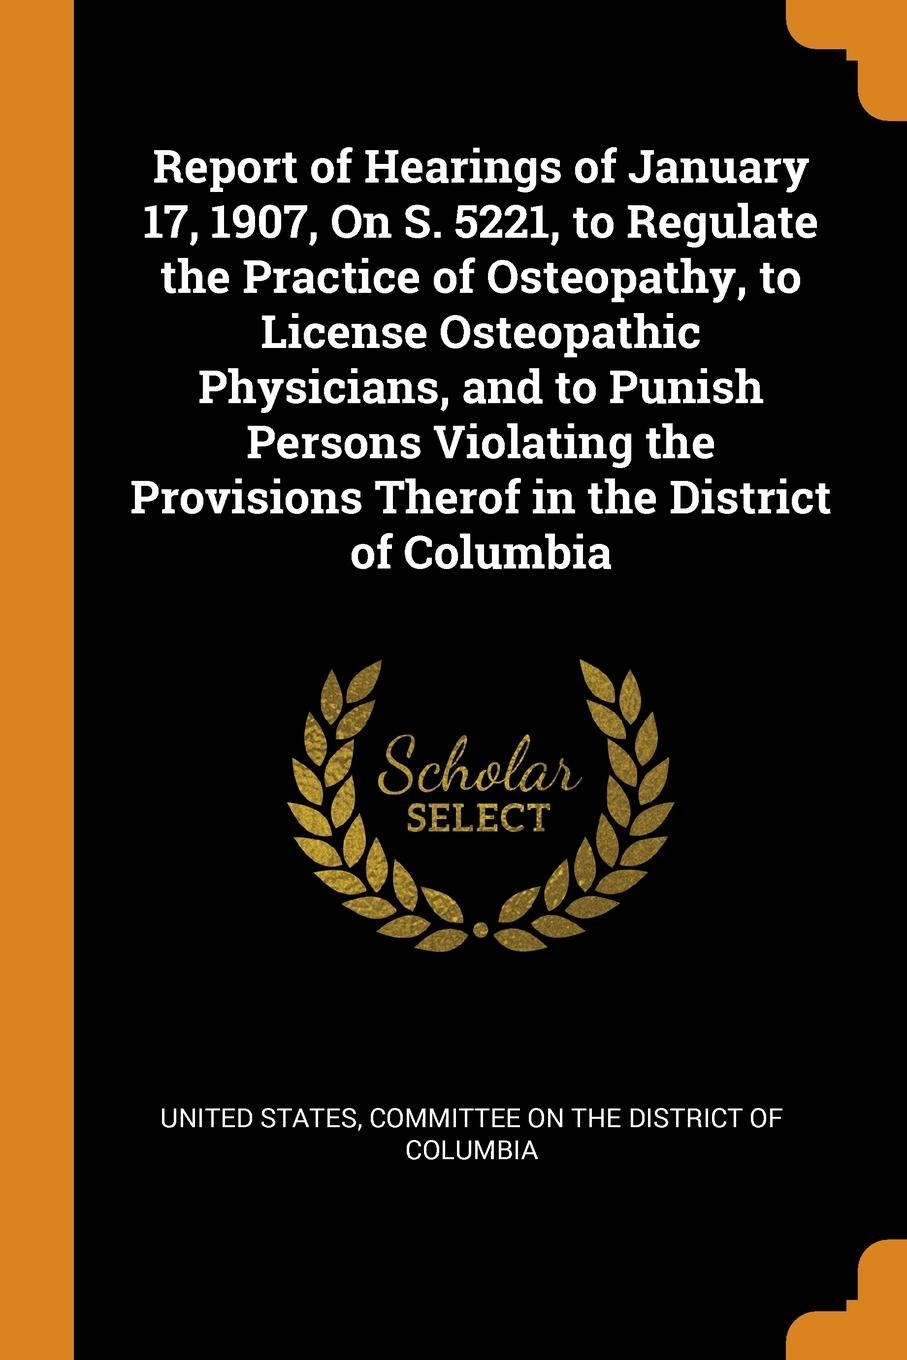 Report of Hearings of January 17, 1907, On S. 5221, to Regulate the Practice of Osteopathy, to License Osteopathic Physicians, and to Punish Persons Violating the Provisions Therof in the District of Columbia.